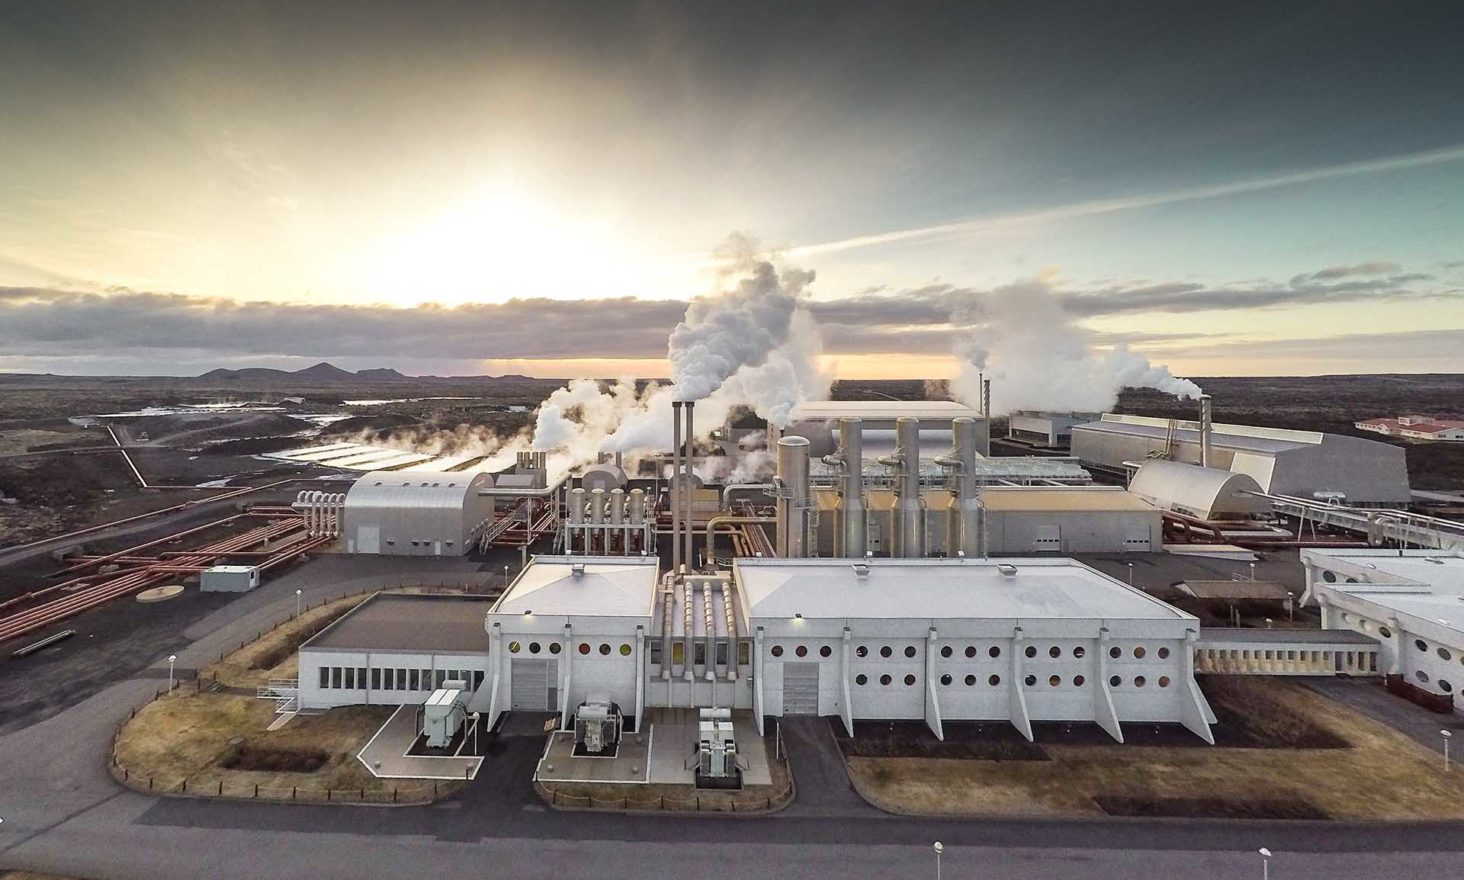 MoonLite Confirms Power & Distribution for Massive Mining Operation in Iceland